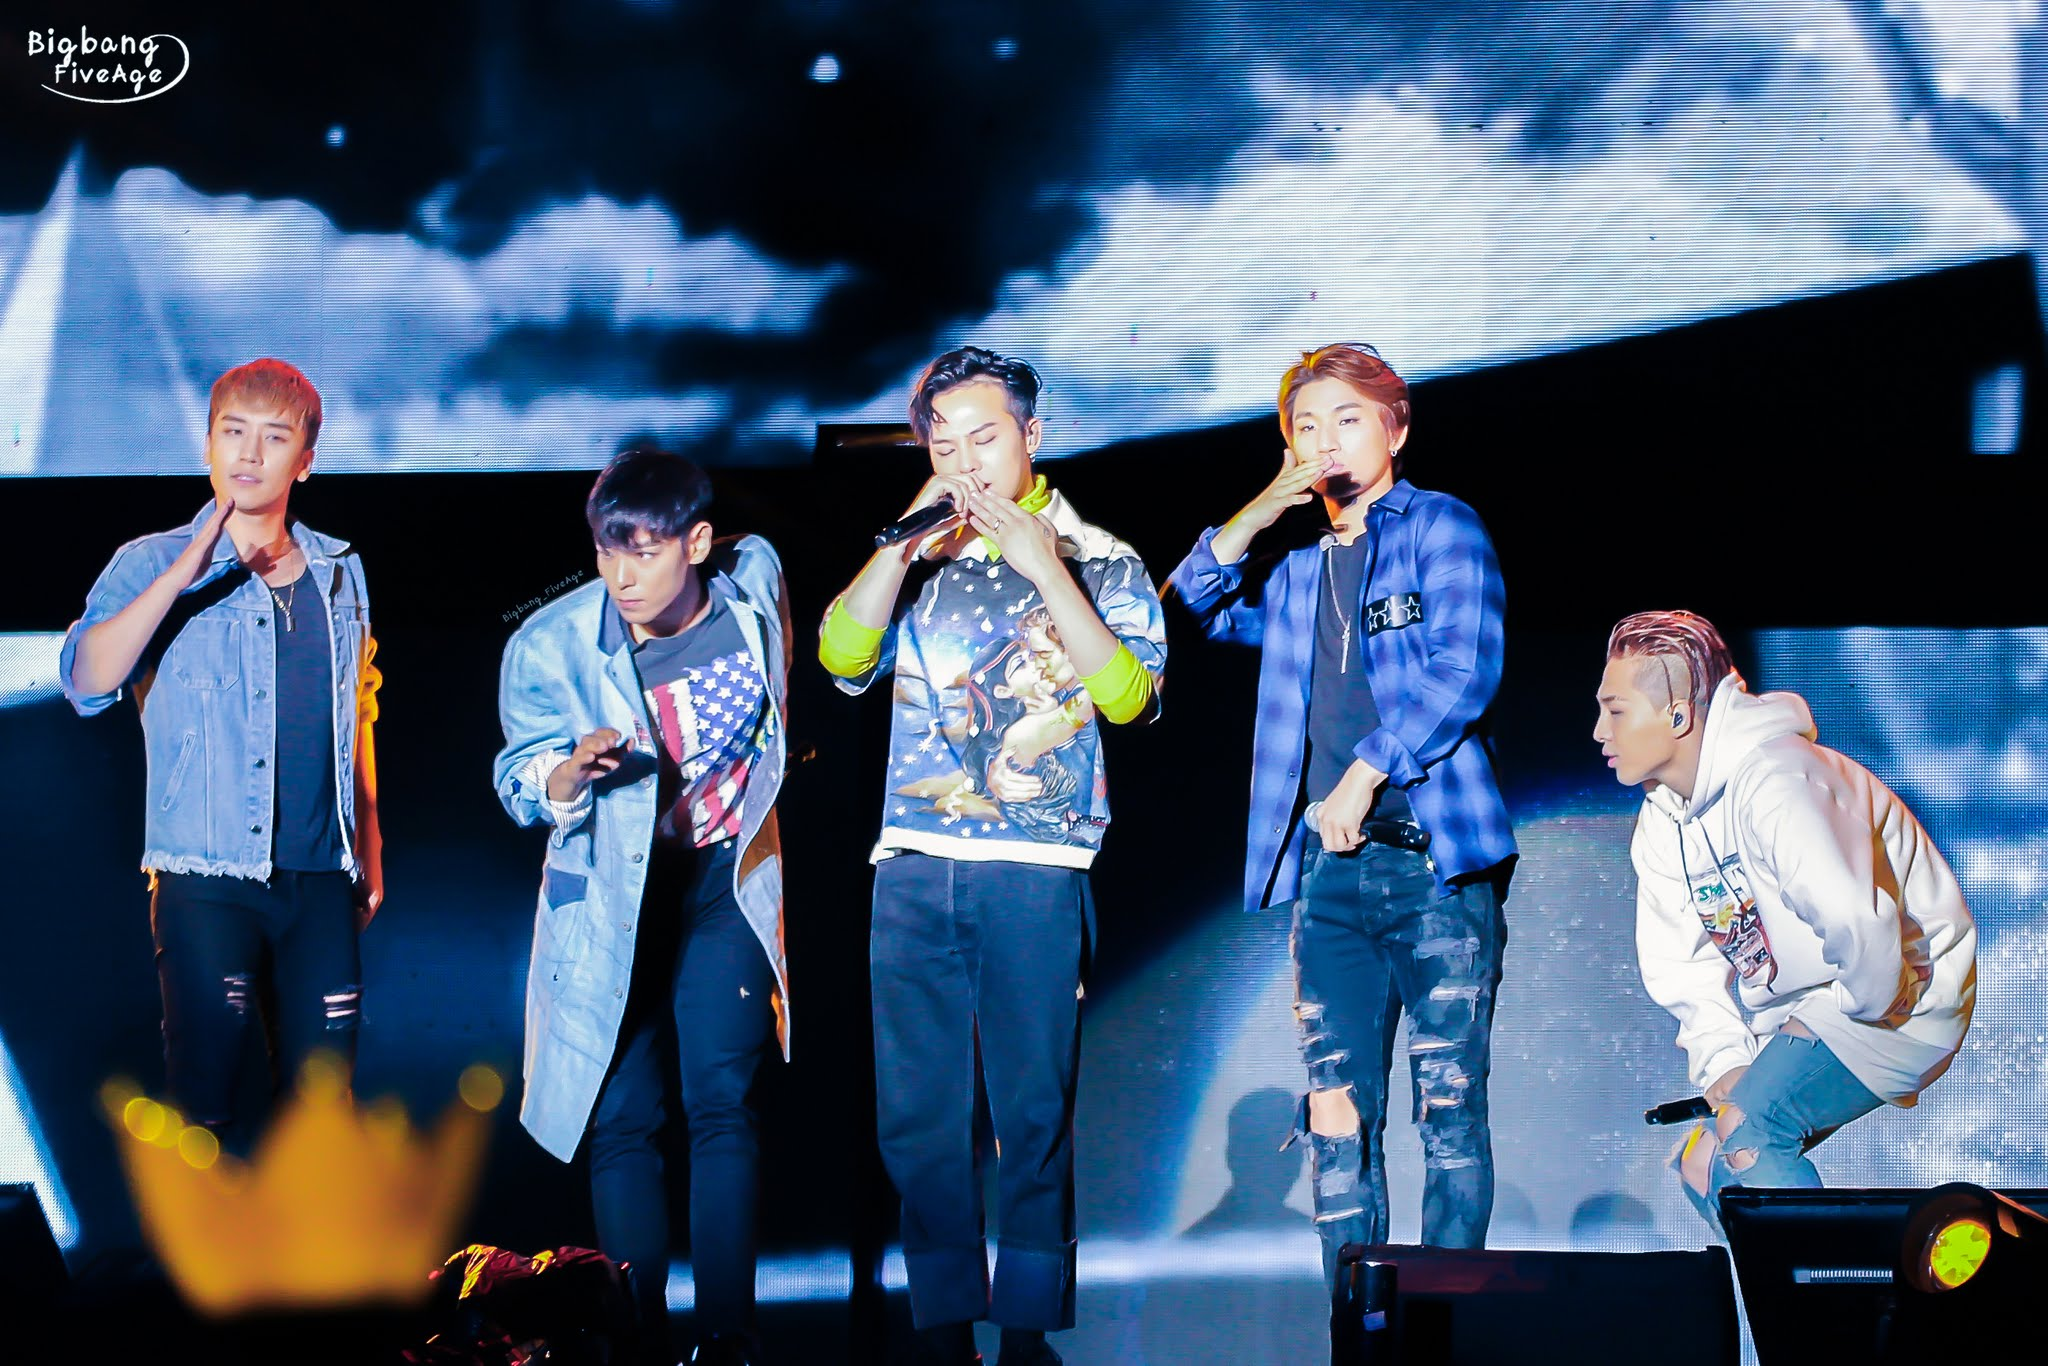 Big Bang - Made V.I.P Tour - Harbin - 24jun2016 - Bigbang_FiveAge - 36.jpg